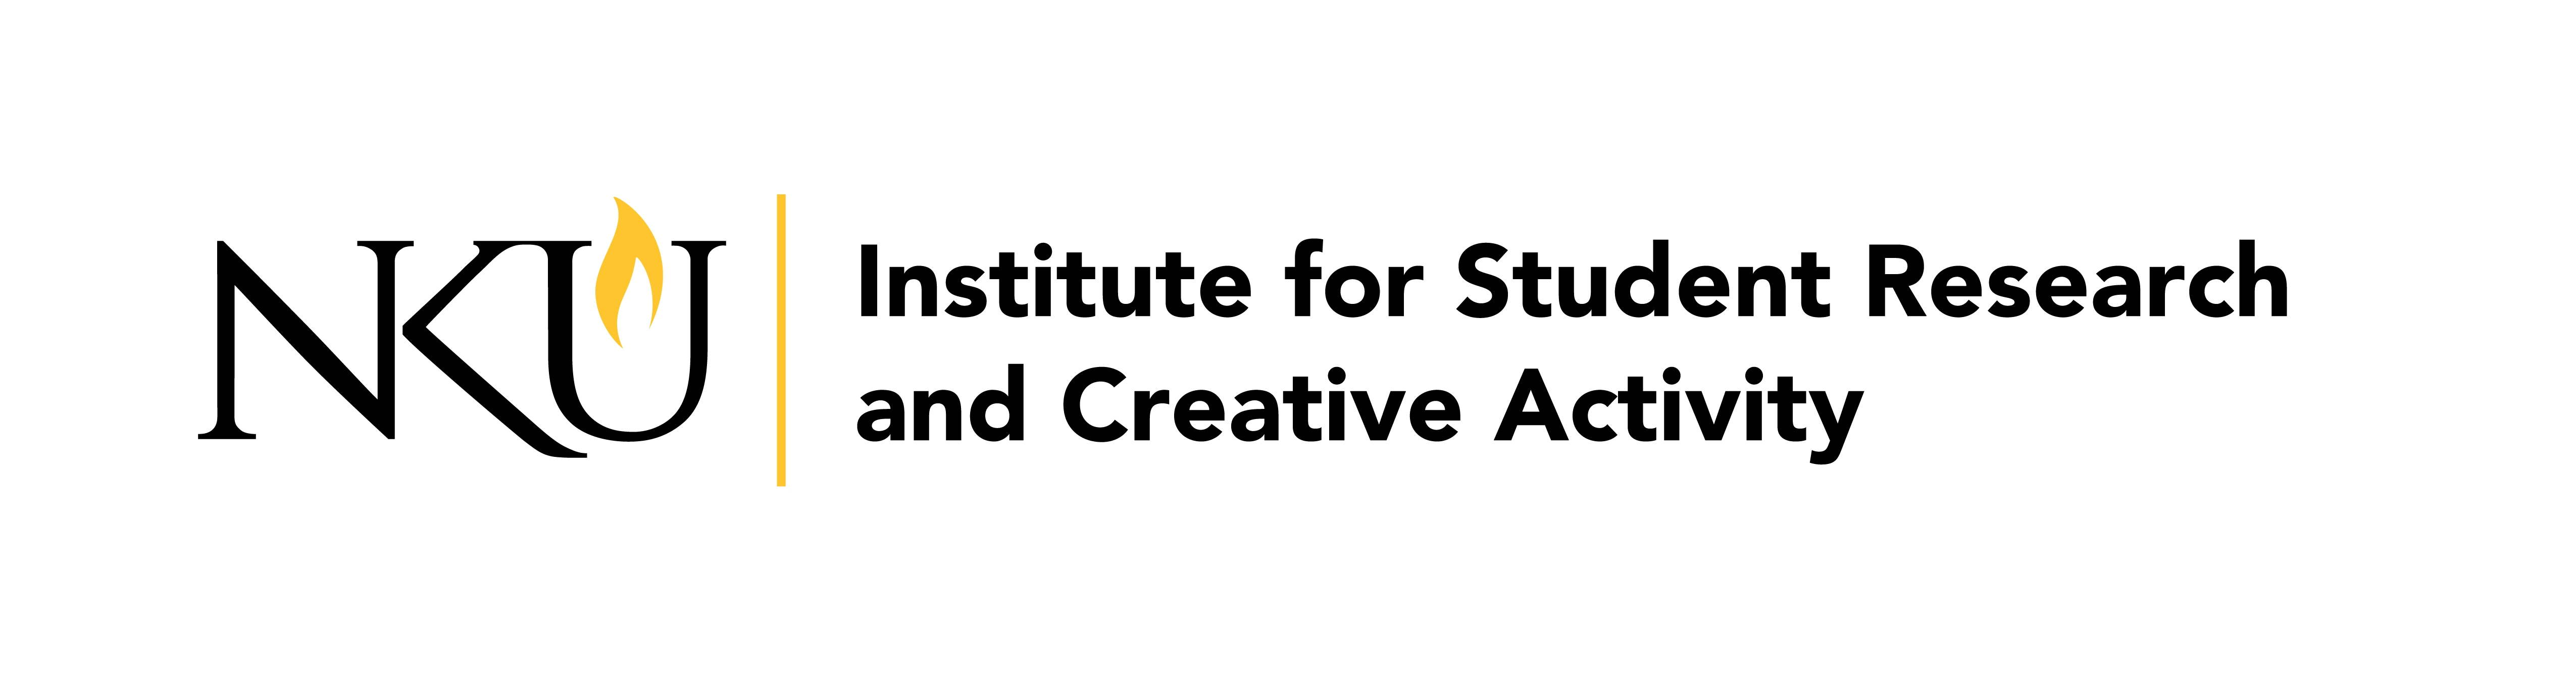 Institute for Student Research and Creative Activity